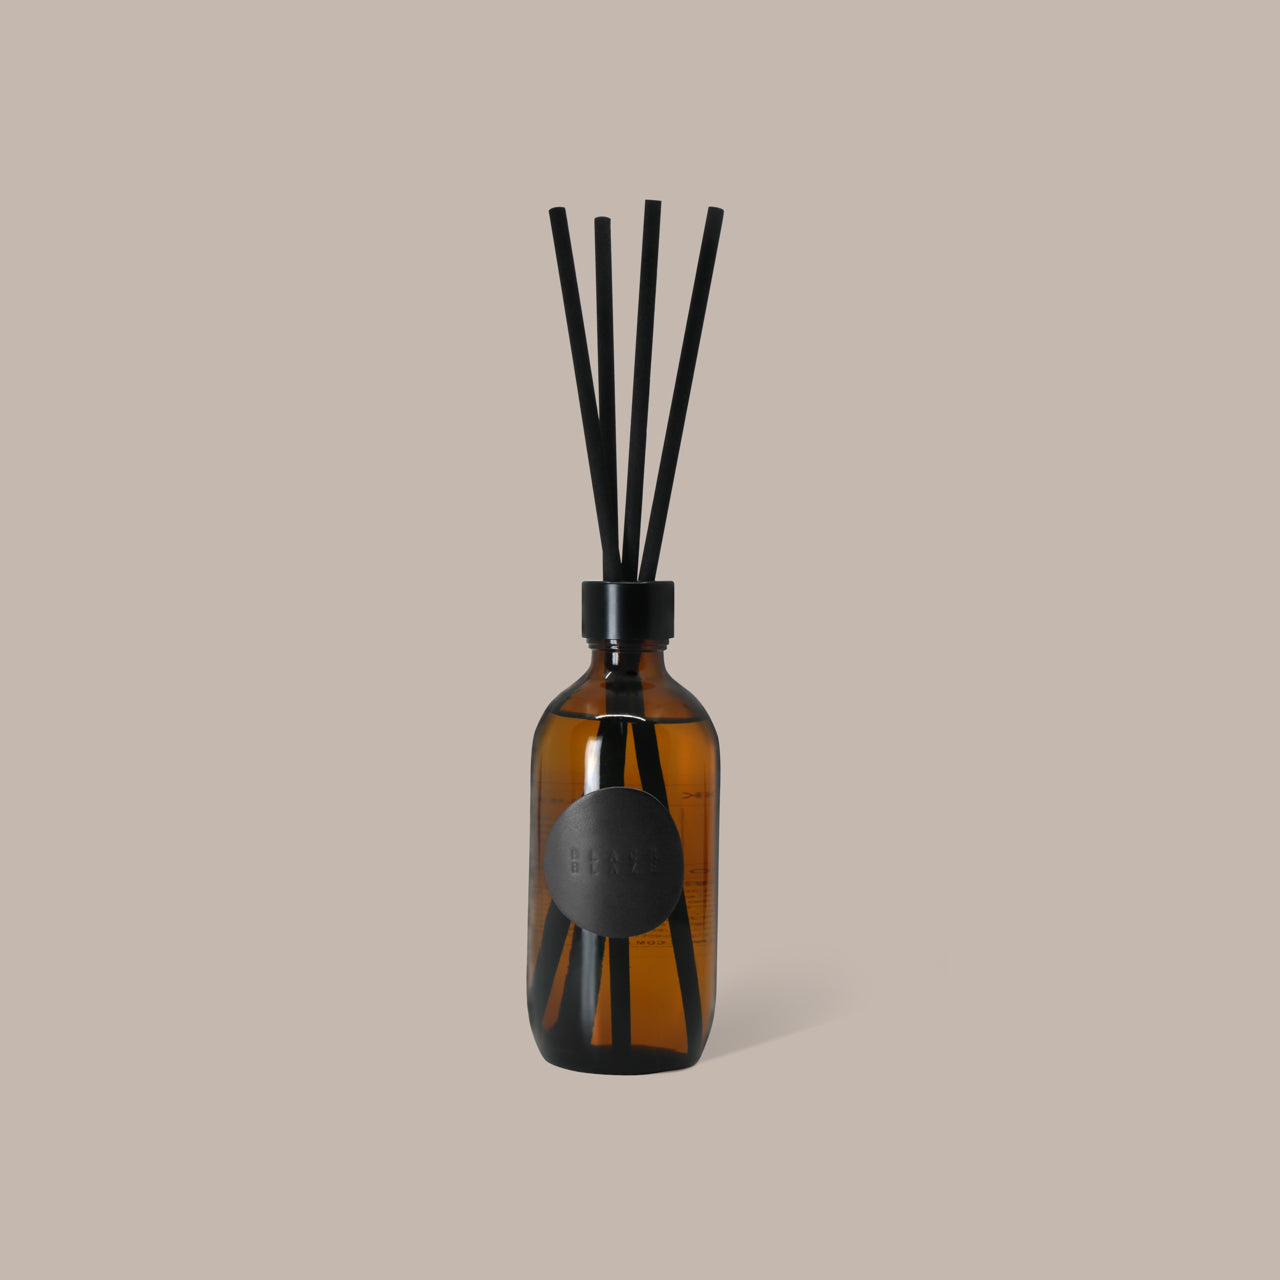 SAUDADE DIFFUSER 200ml, DIFFUSER, BLACK BLAZE, BLACK BLAZE - BLACK BLAZE | Scents of Australia | Natural Home Fragrance Label  | Australia's 1St Wooden Wick Candle